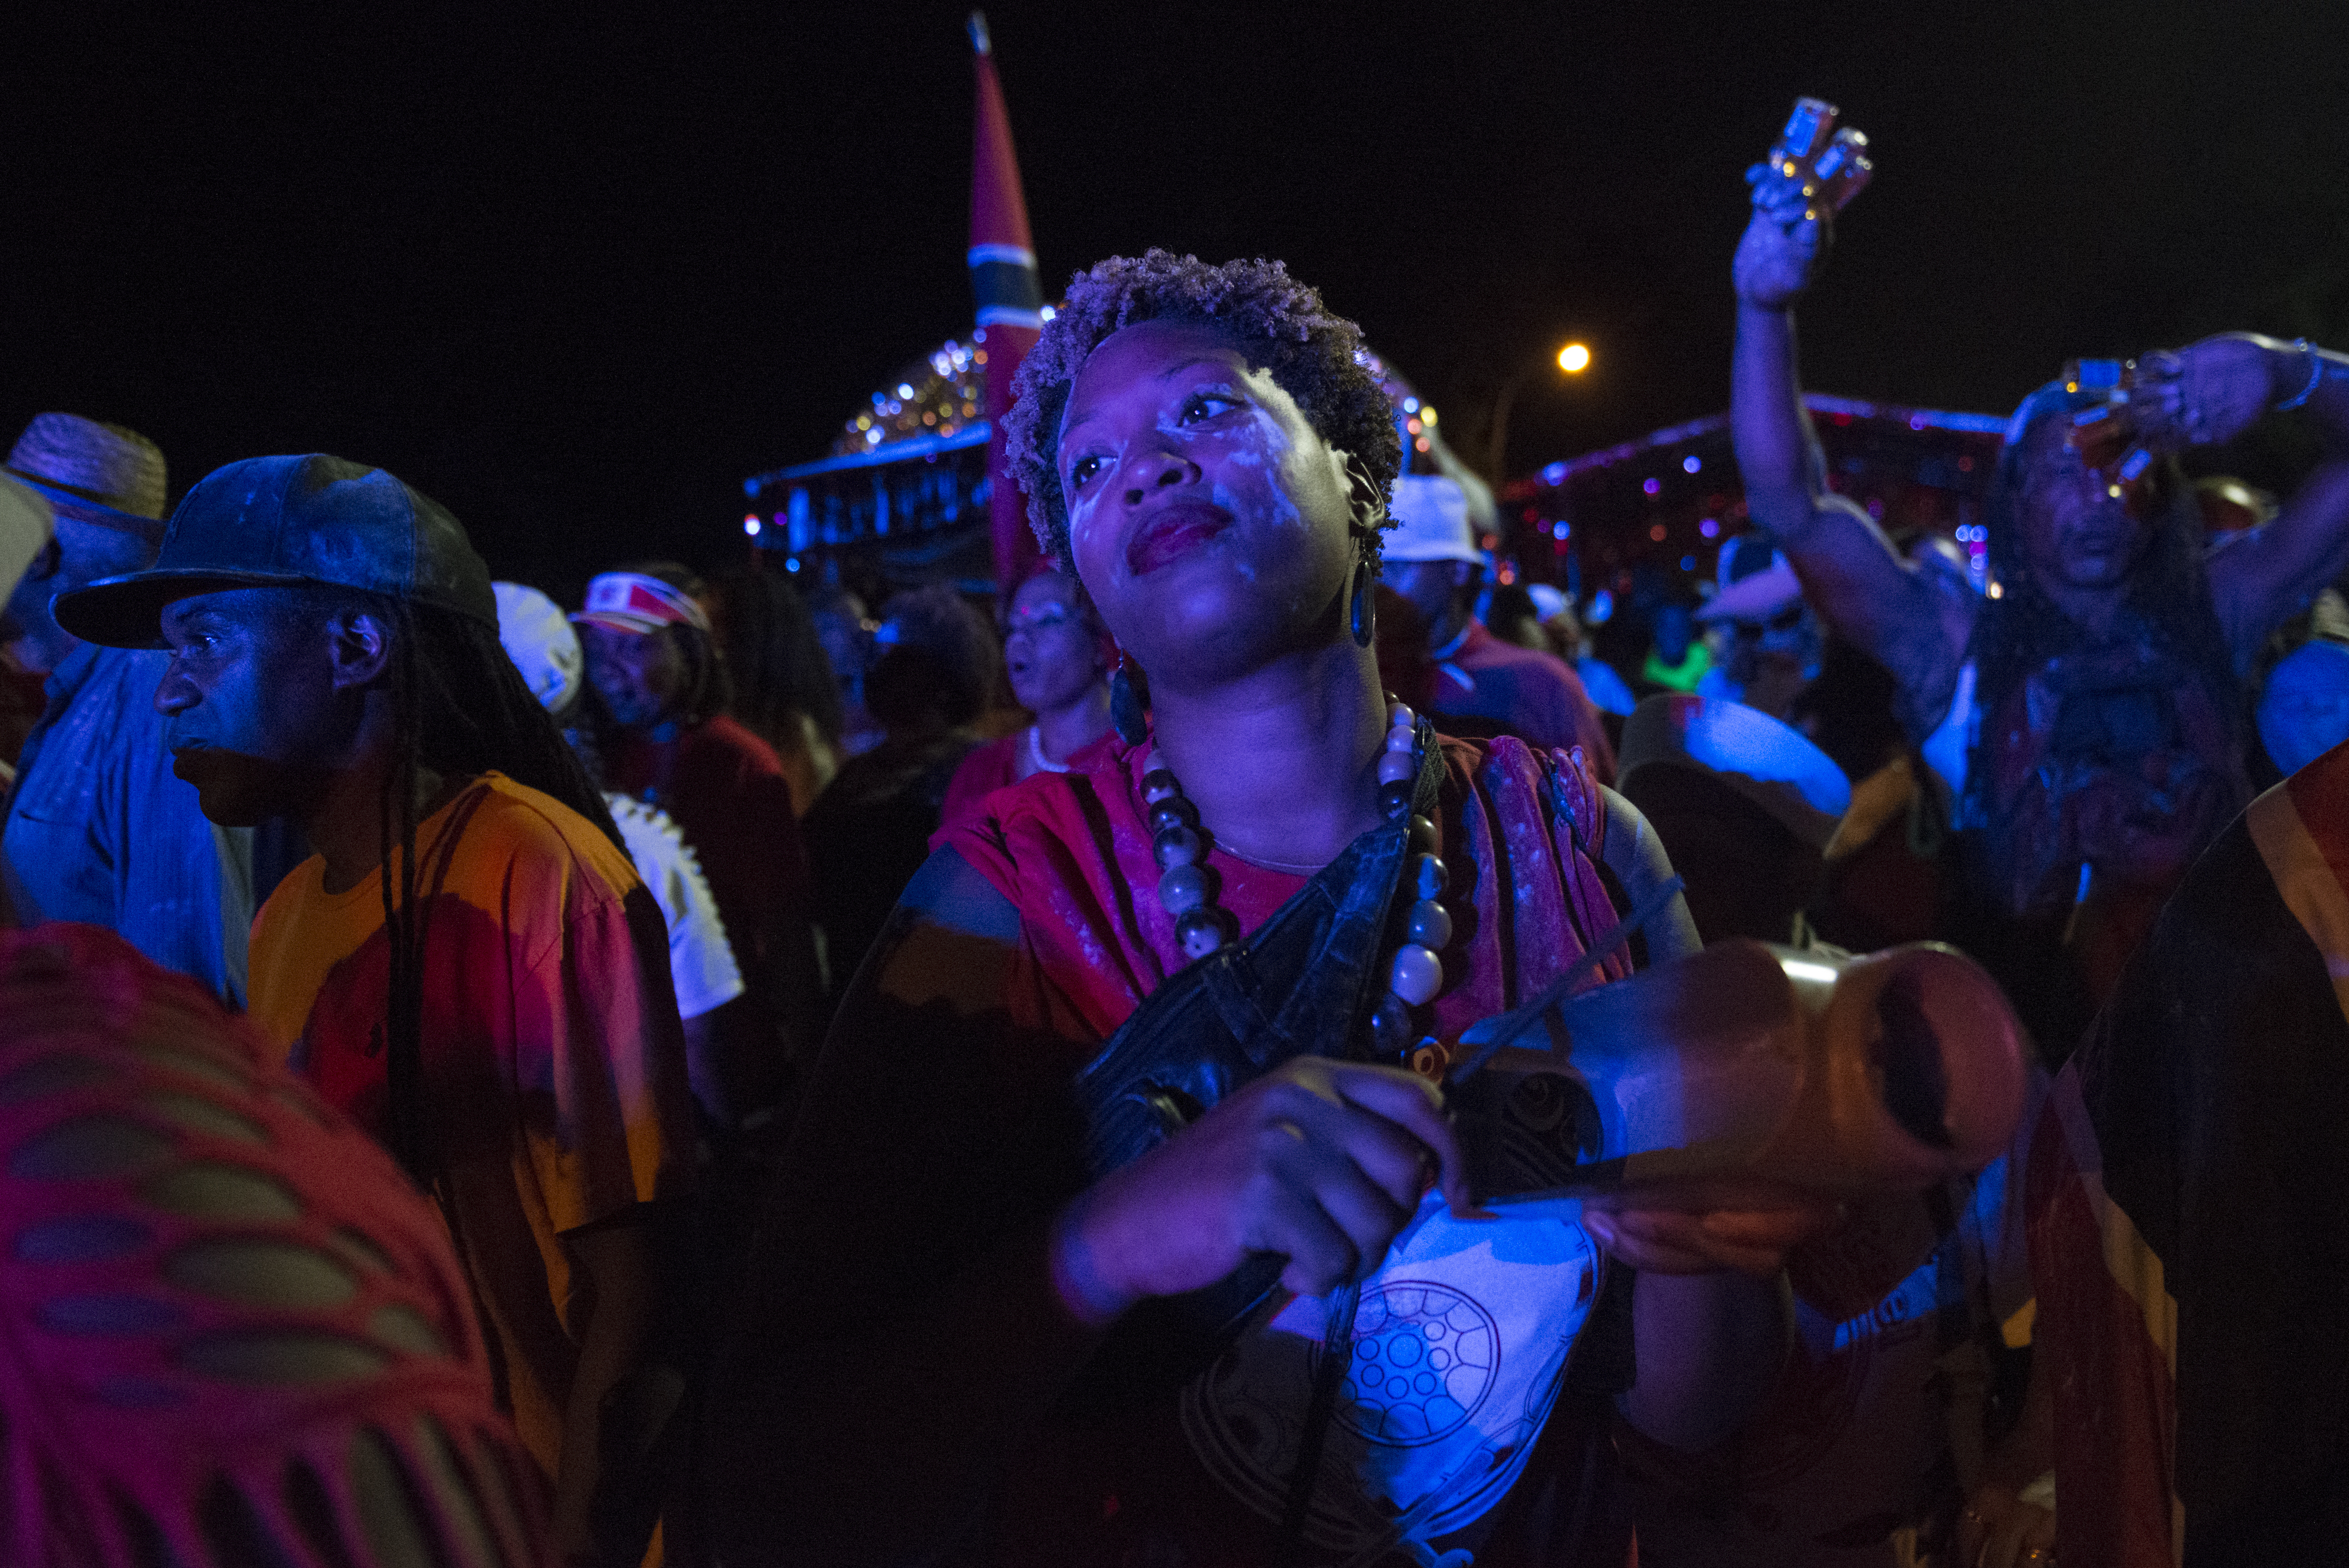 Revelers participate in Jouvert, an annual Caribbean street festival, celebrated each Labor Day in Brooklyn (Photo by Stephanie Keith/Getty Images)